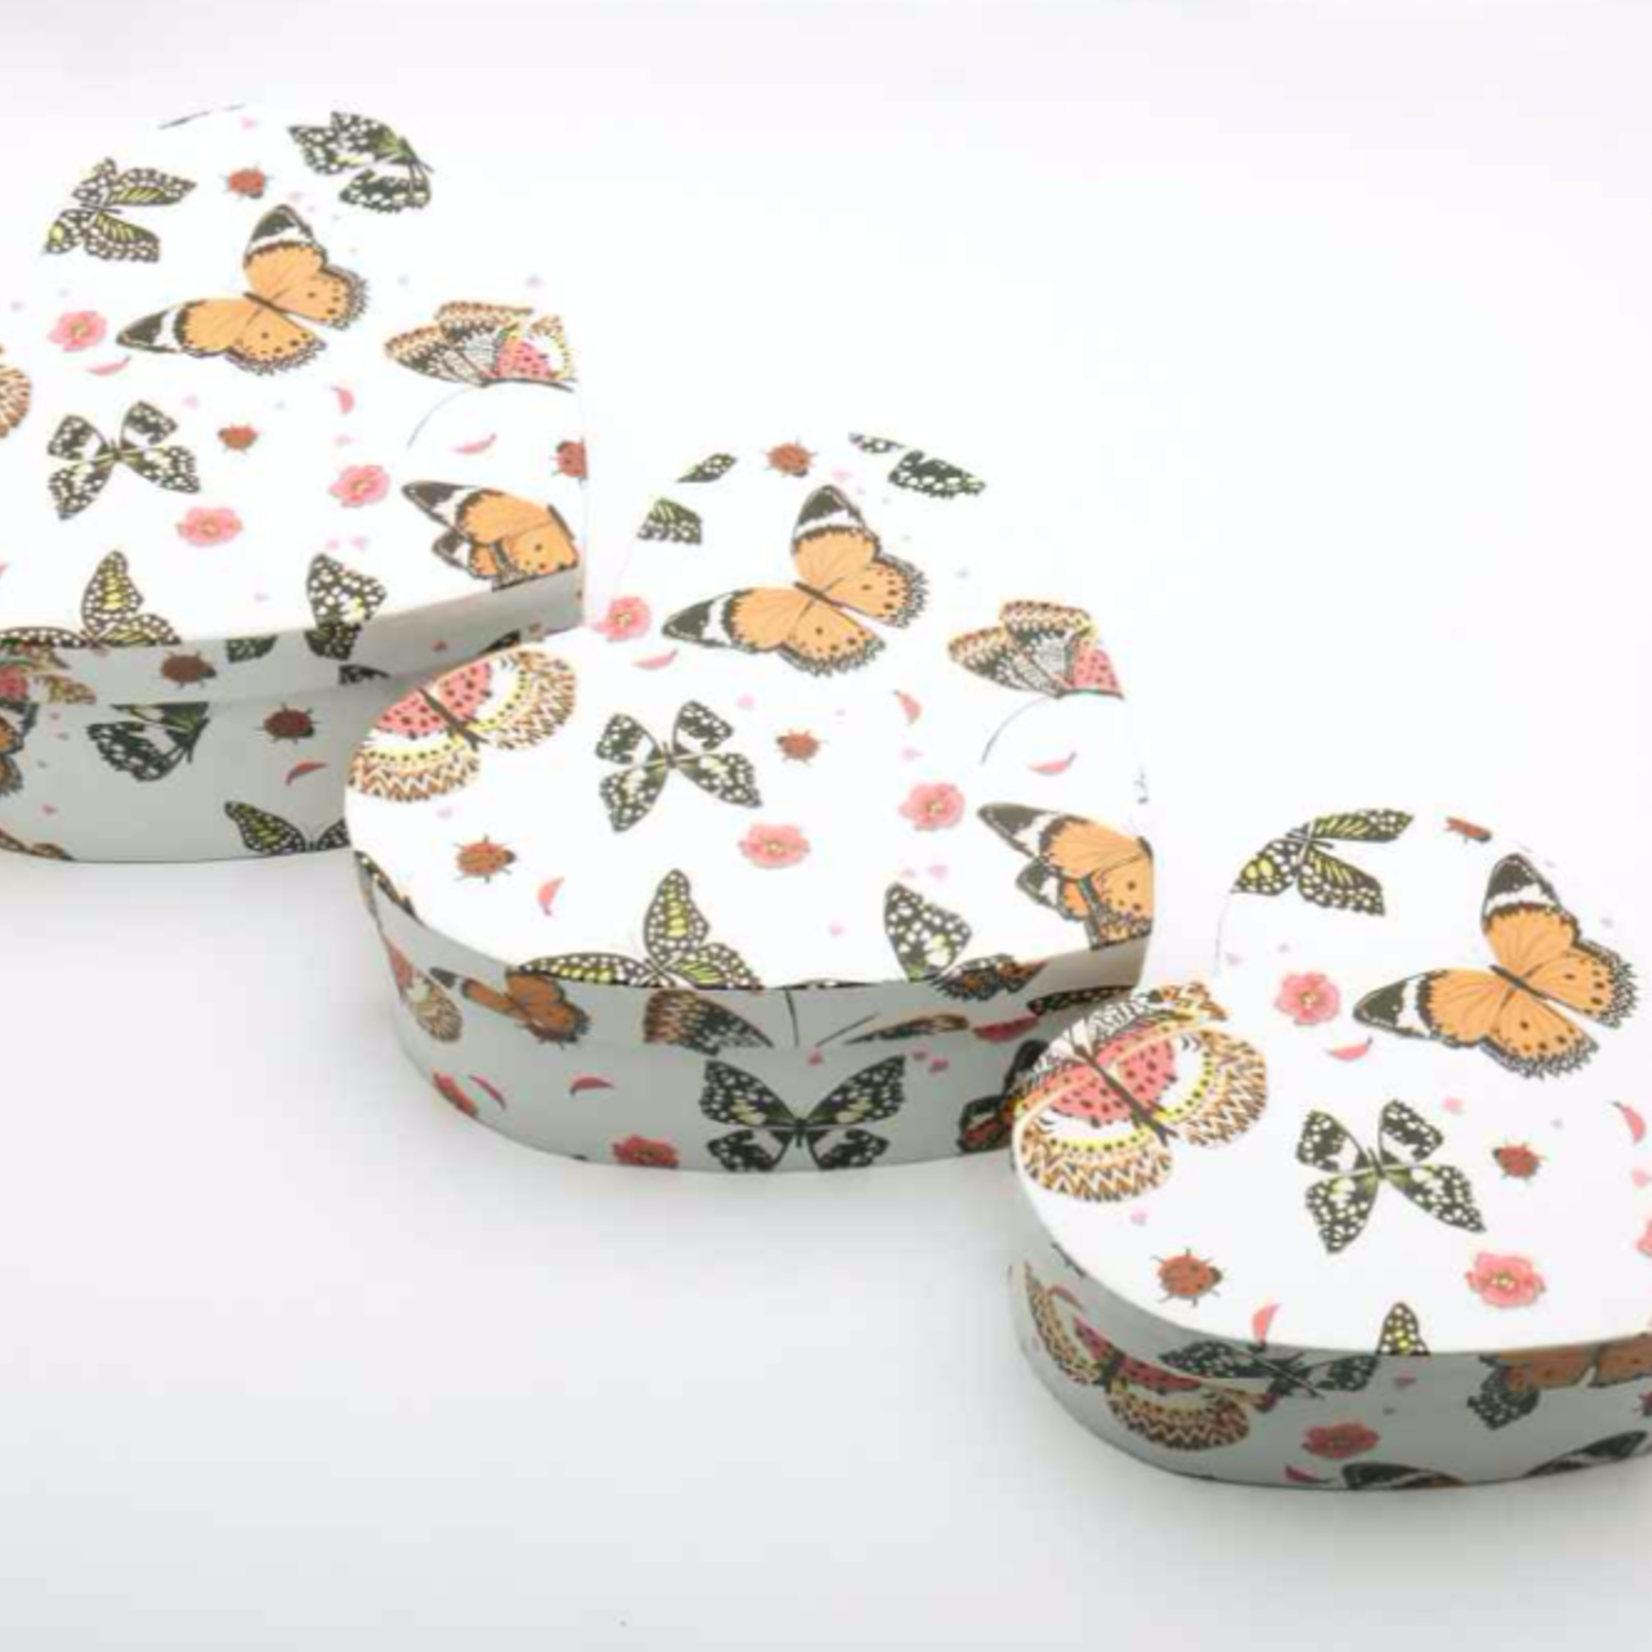 3 PIECE HEART BOX SET, in sets only